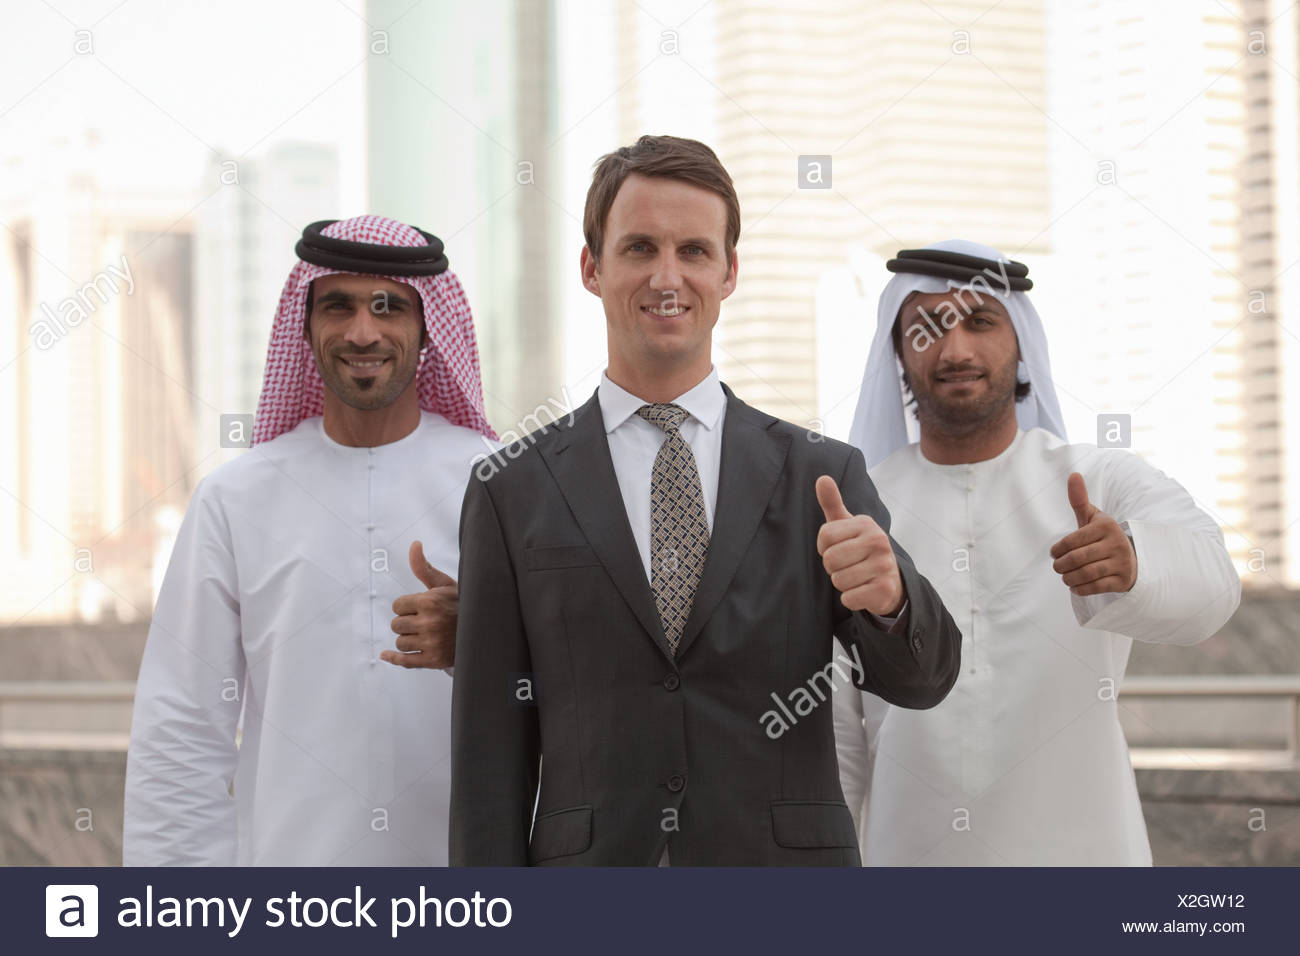 given middle eastern single men Middeeastchristianscom is a friendly christian online meeting place for single  middle east christians irrespective church denomination so whether you identify .